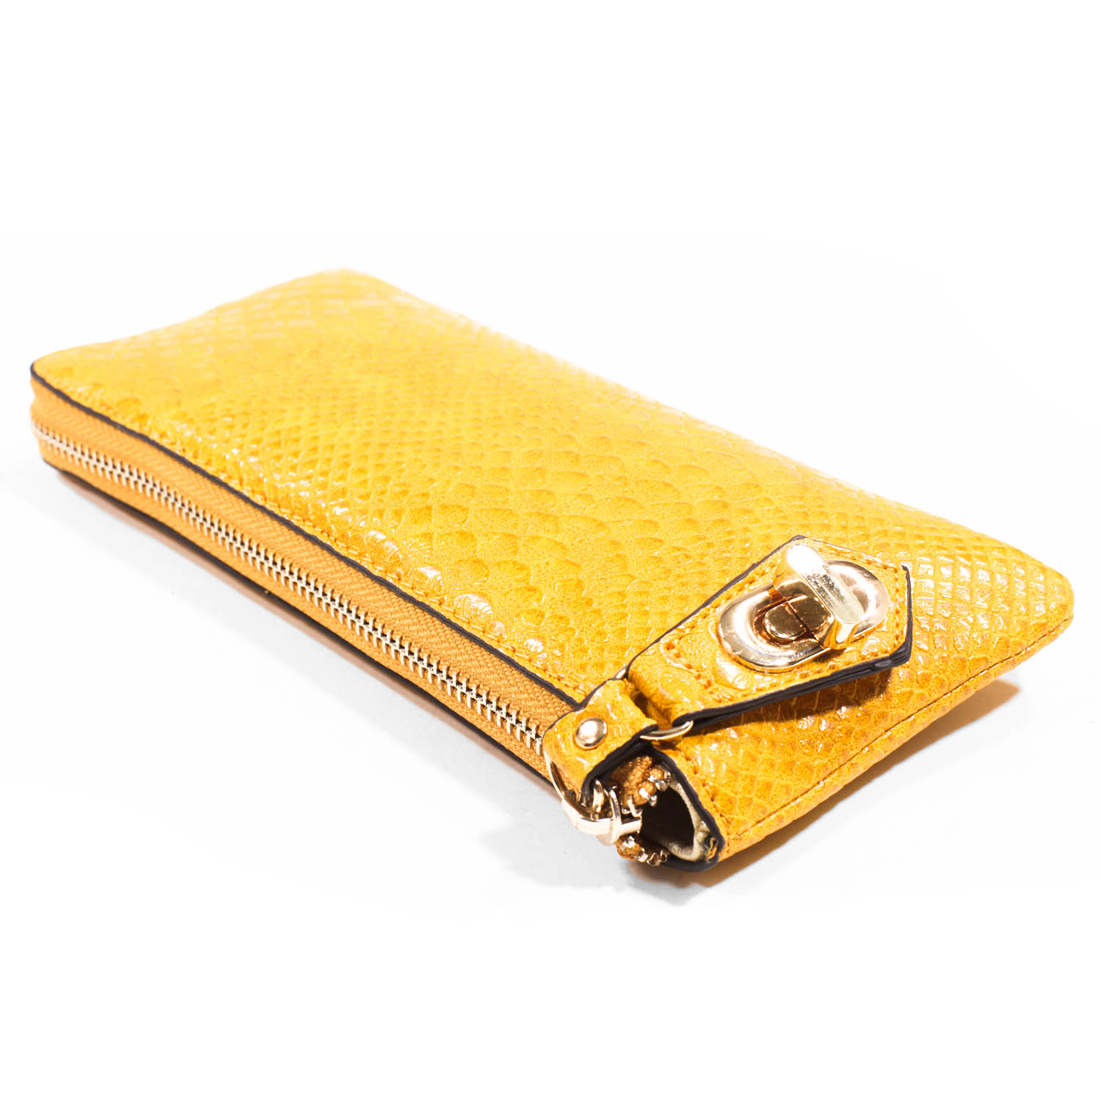 Fashion Zip Around Wallet with Snake Embossed Texture